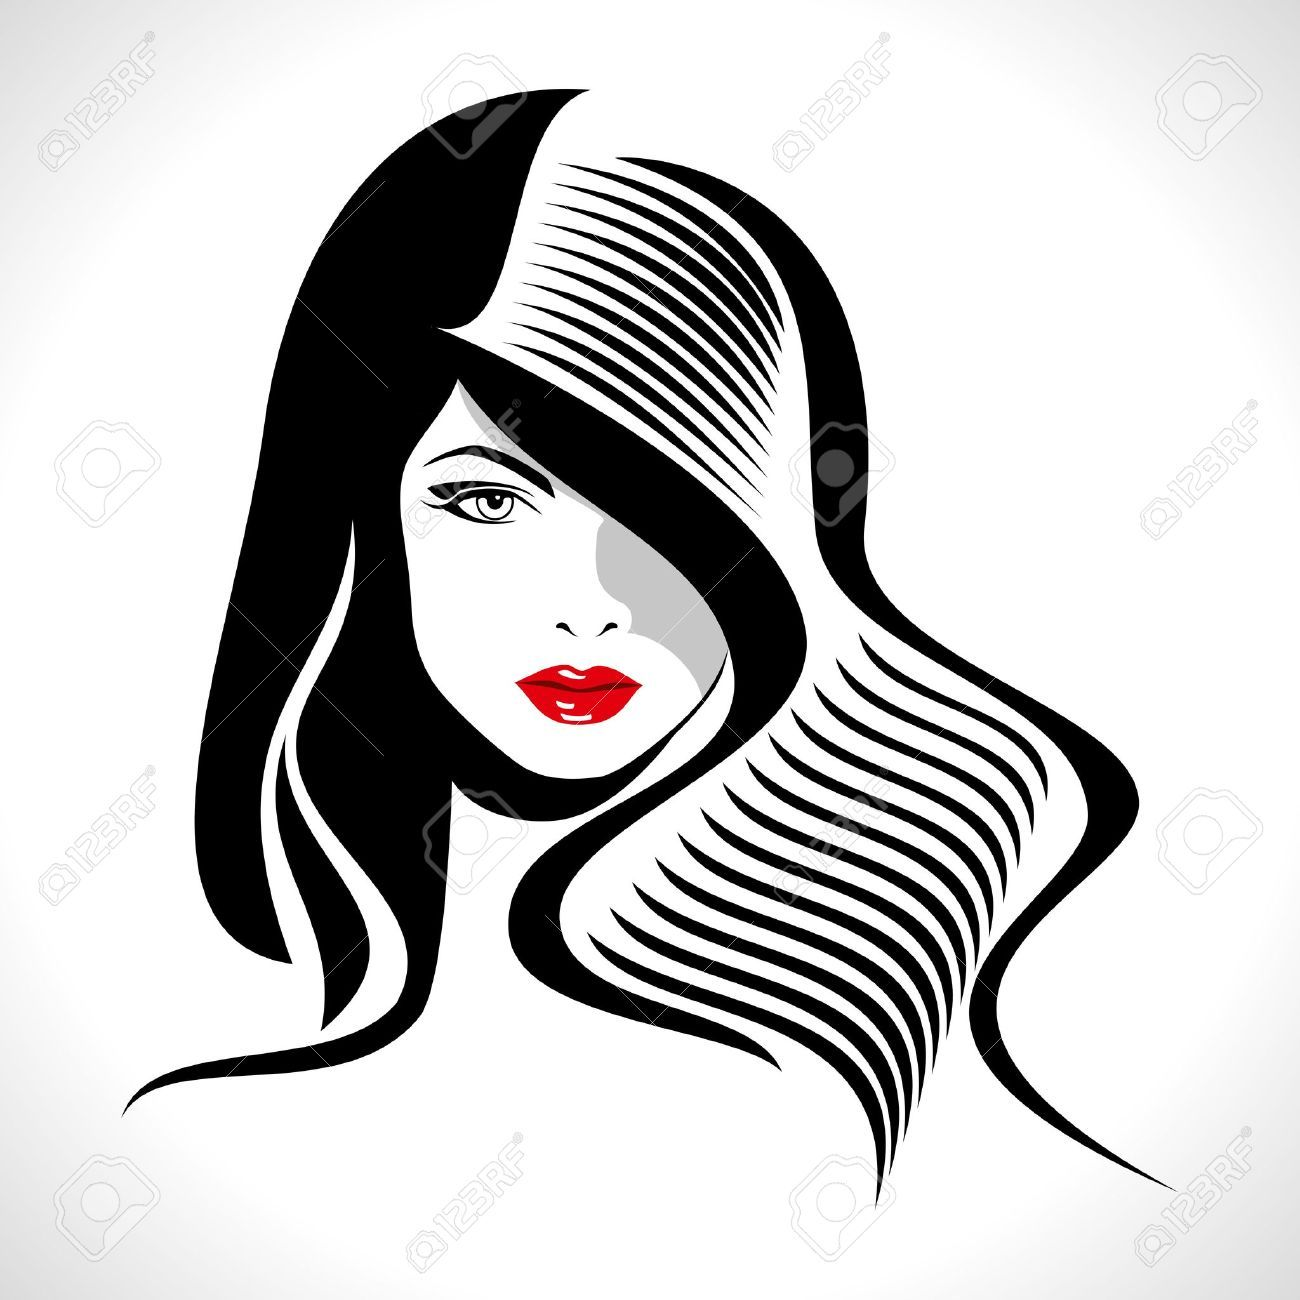 Silhouette at getdrawings com. Barber clipart woman